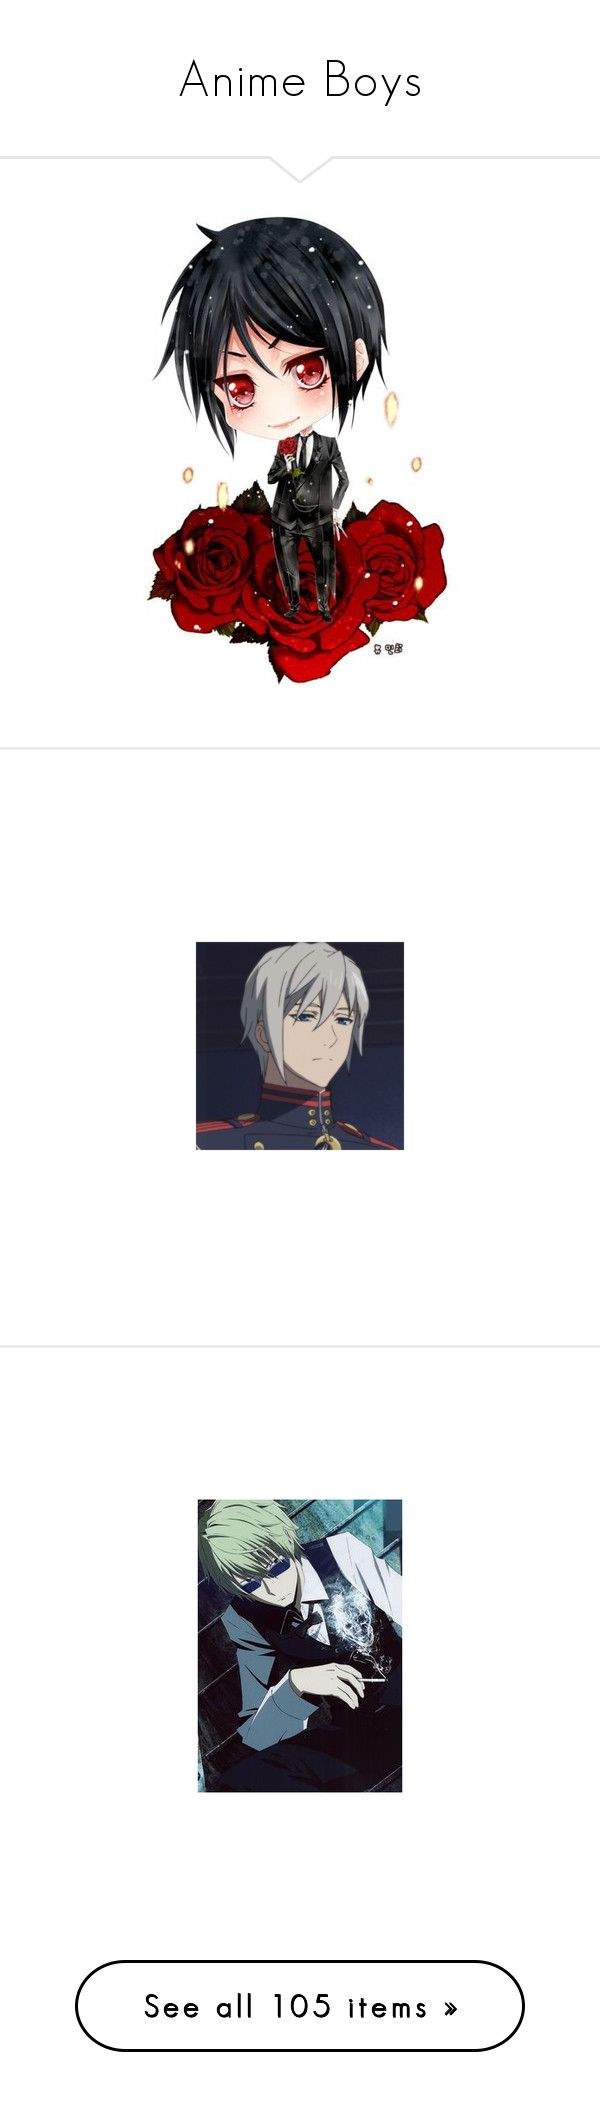 """""""Anime Boys"""" by lgdalaten ❤ liked on Polyvore featuring black butler, vocaloid, anime, characters, images, drawings, anime boy, pokemon, backgrounds and disney"""